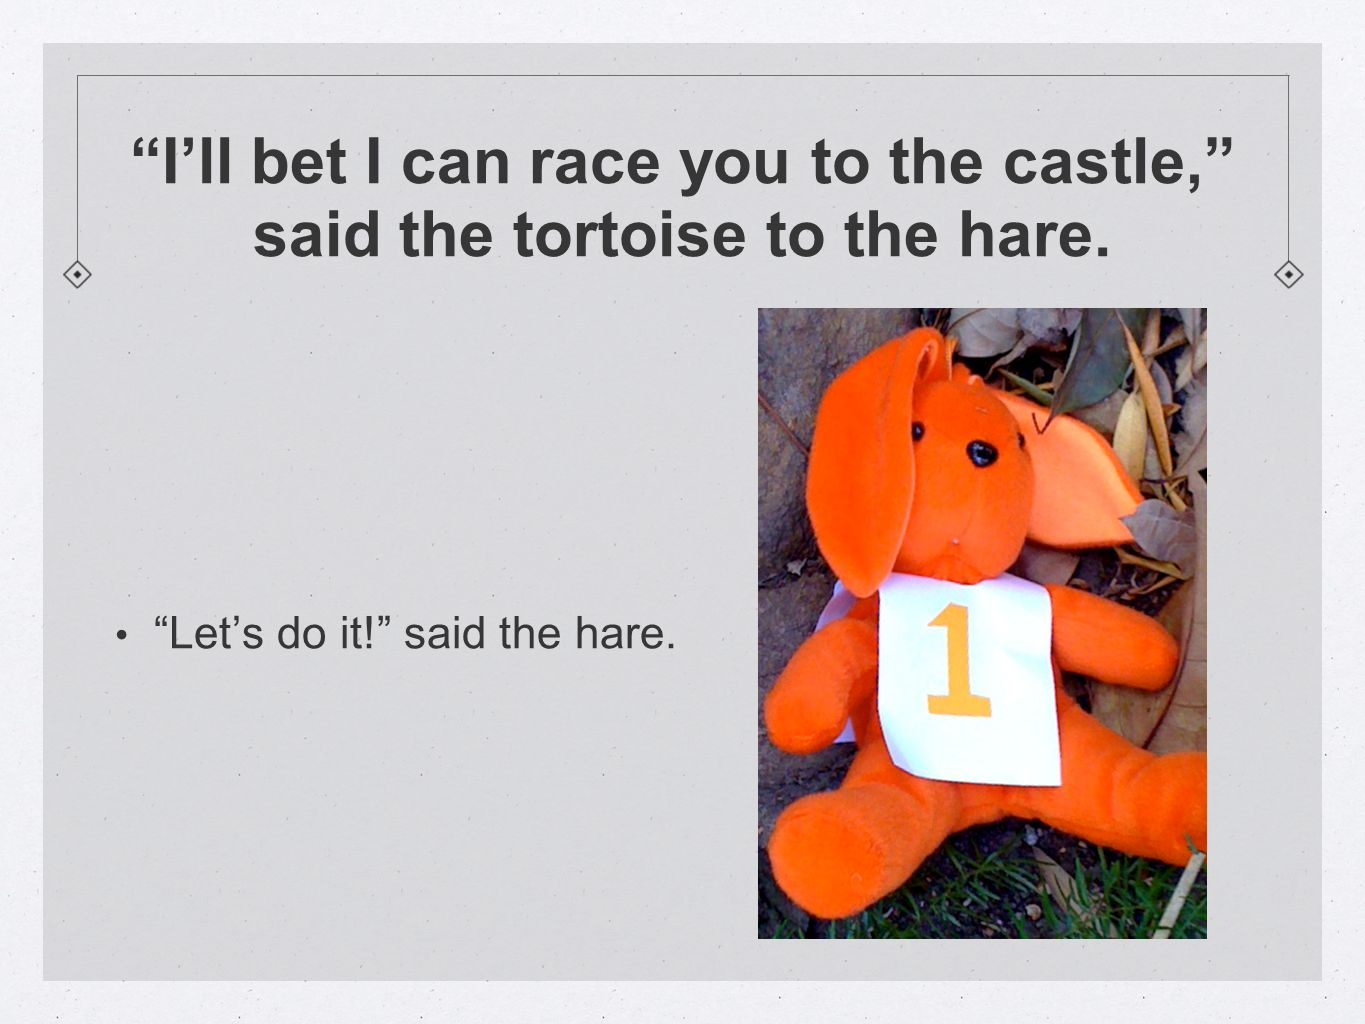 I'll bet I can race you to the castle, said the tortoise to the hare.